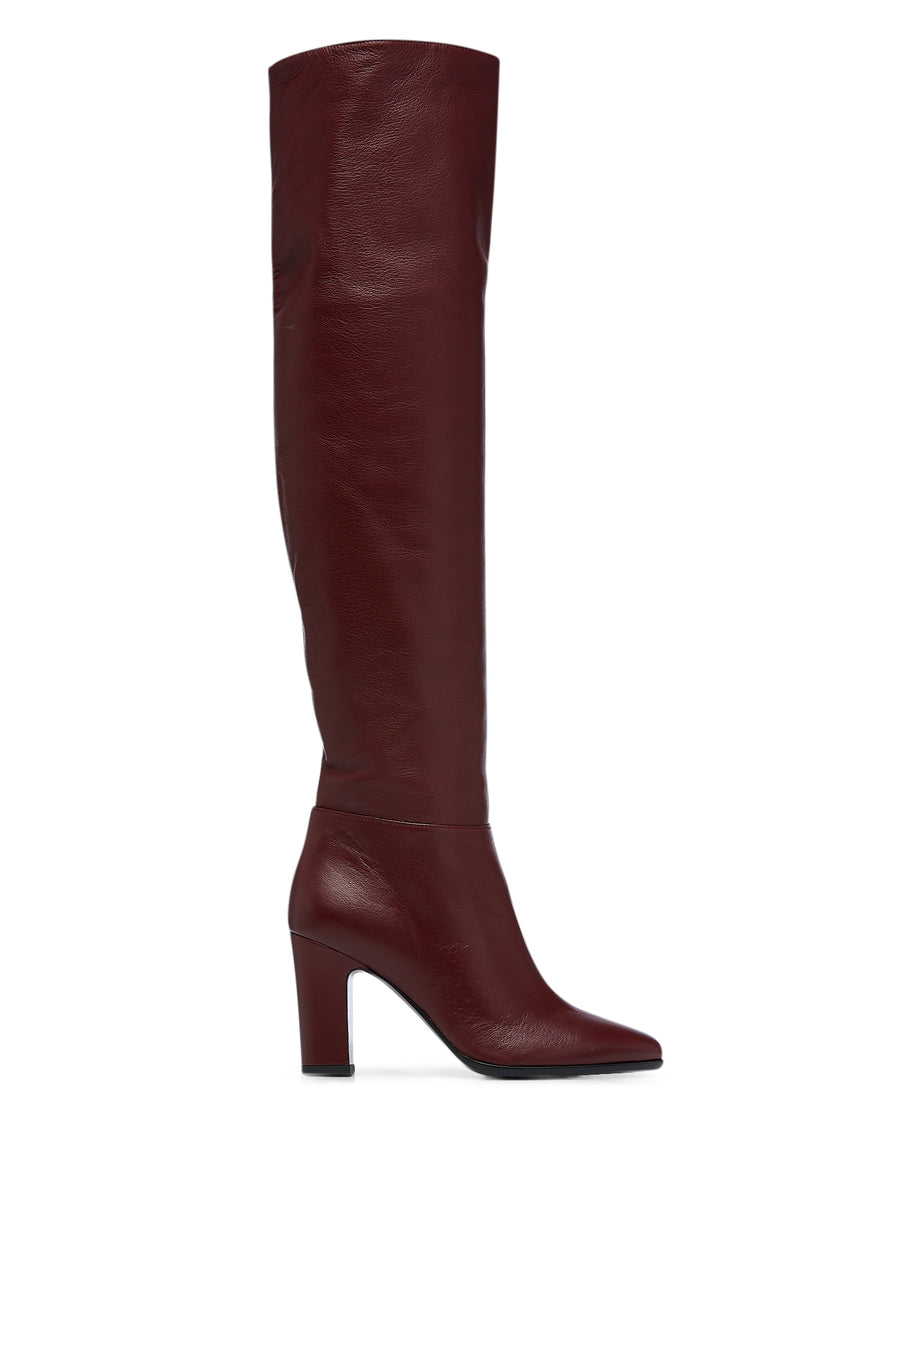 Invest in our Leather Knee High Boot this Winter.